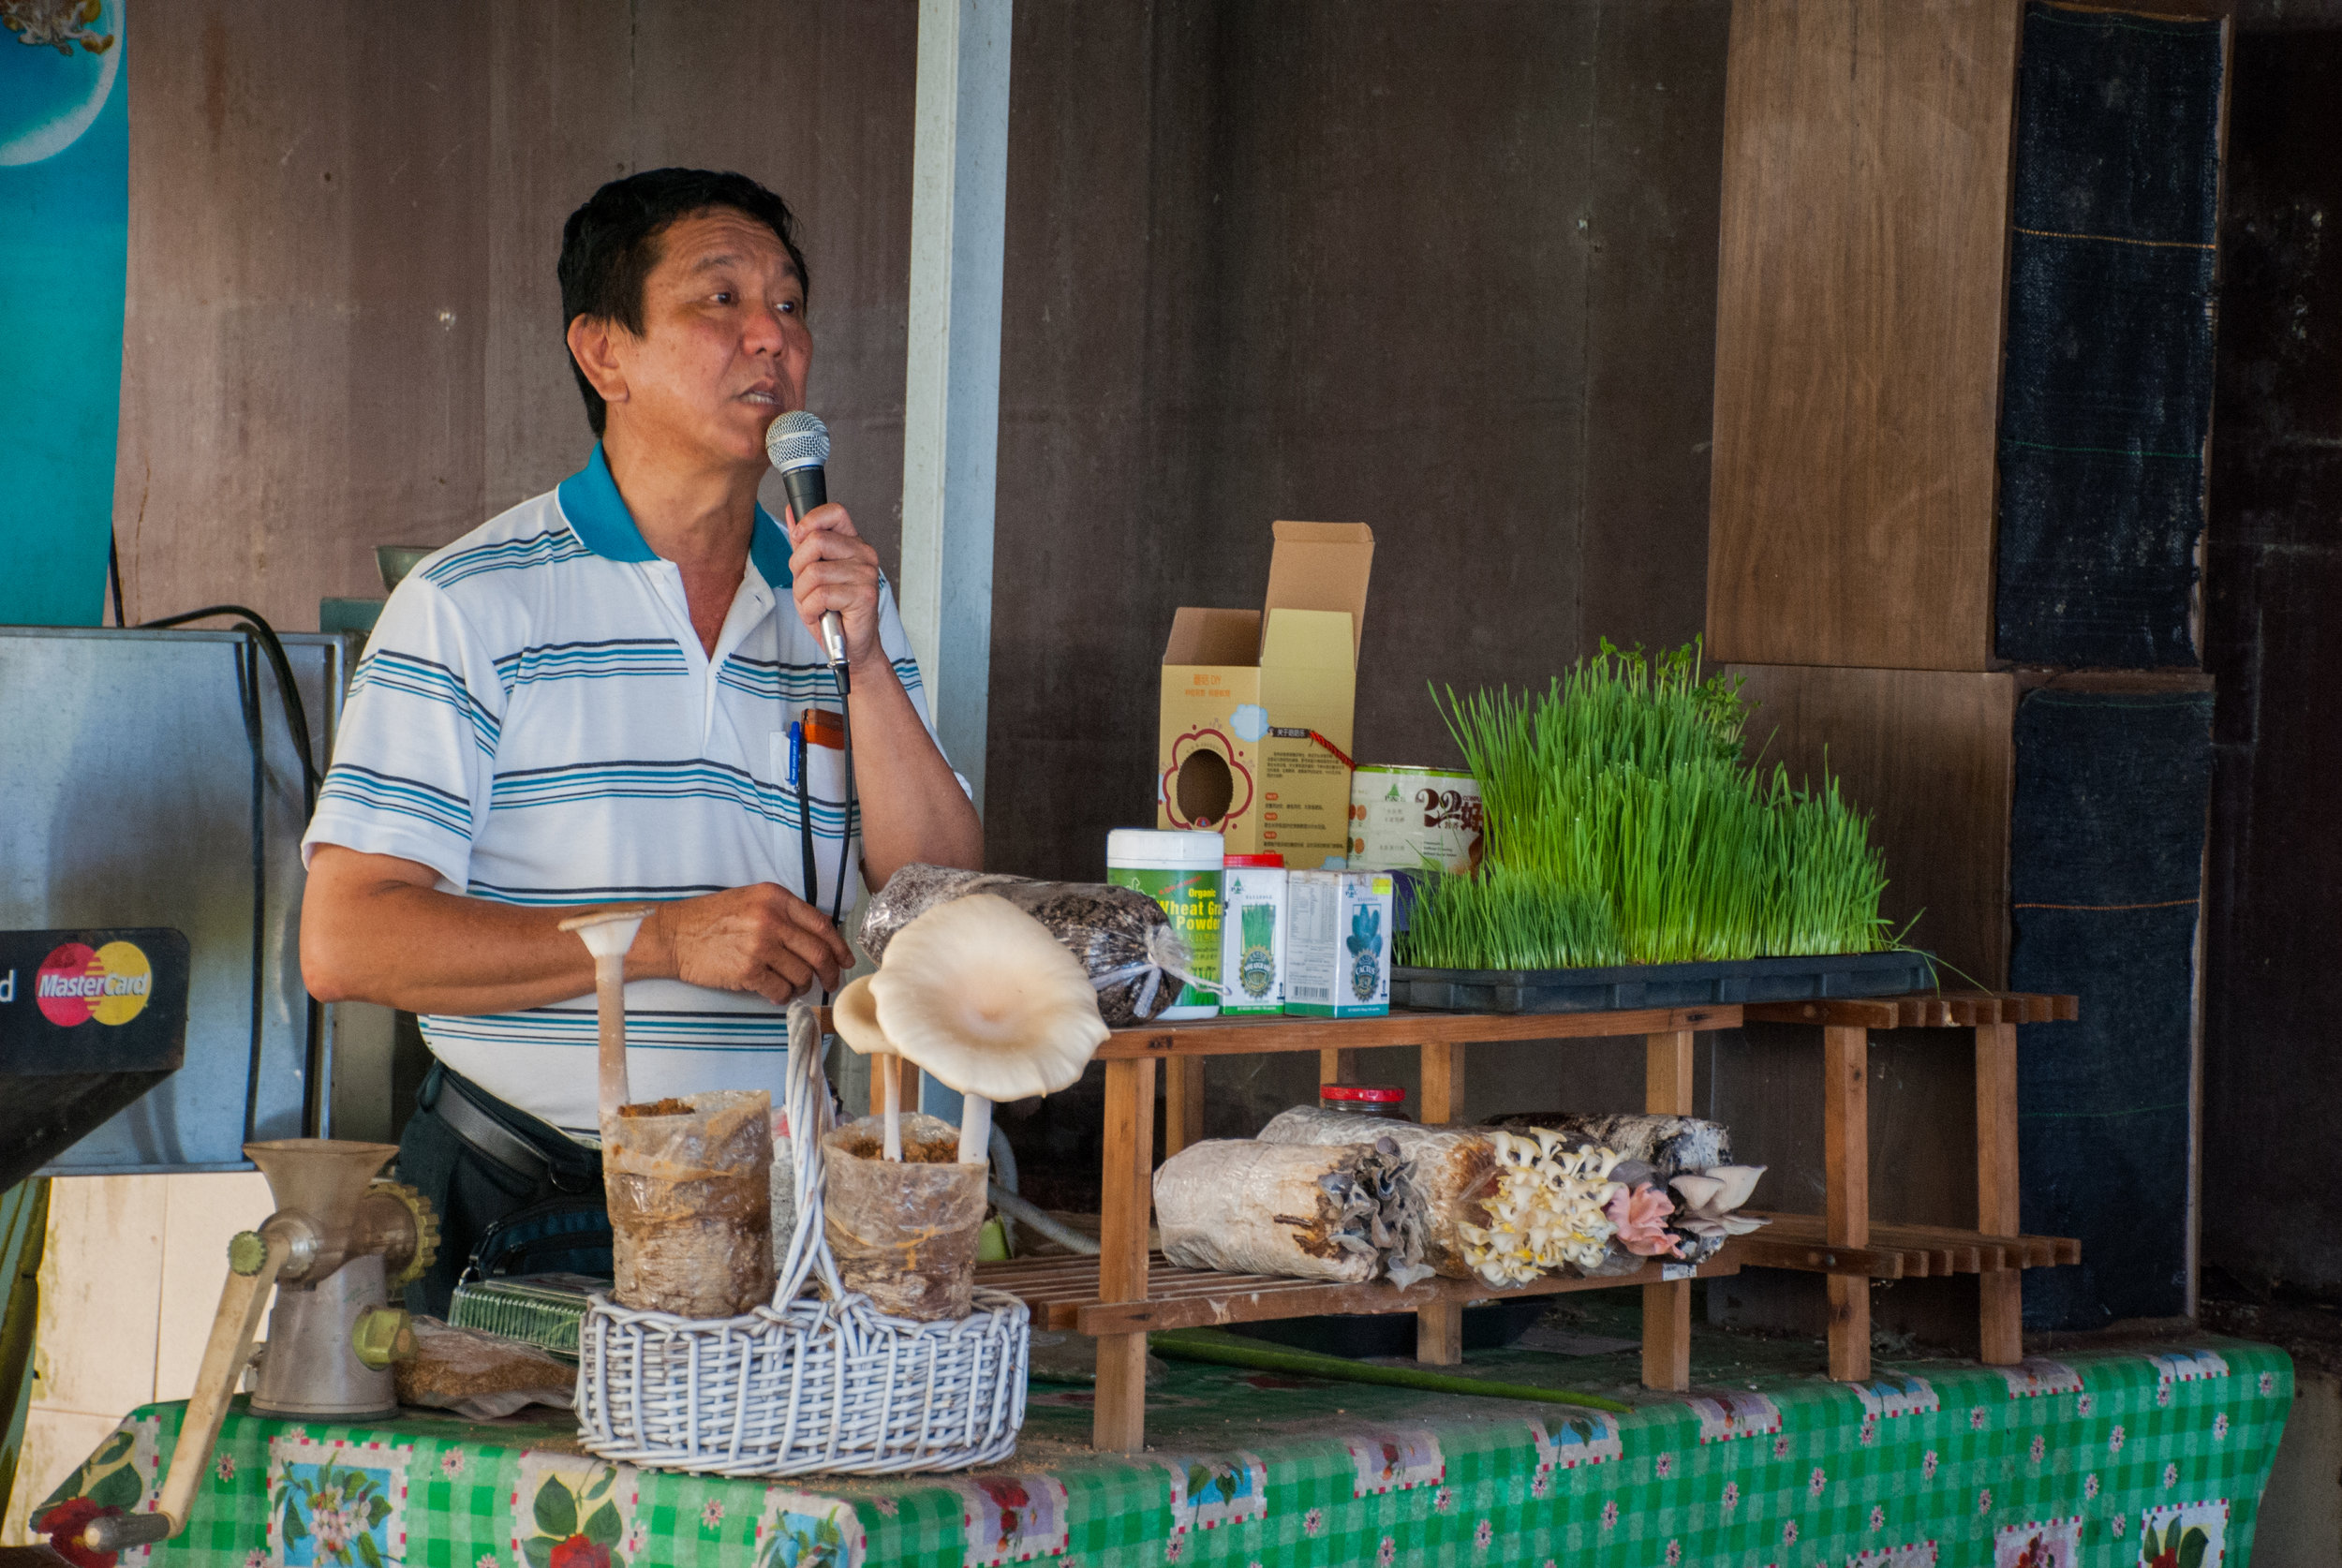 Mr Woon, founder of Kin Yan Agrotech passionately presented to the participants about the benefits of wheatgrass